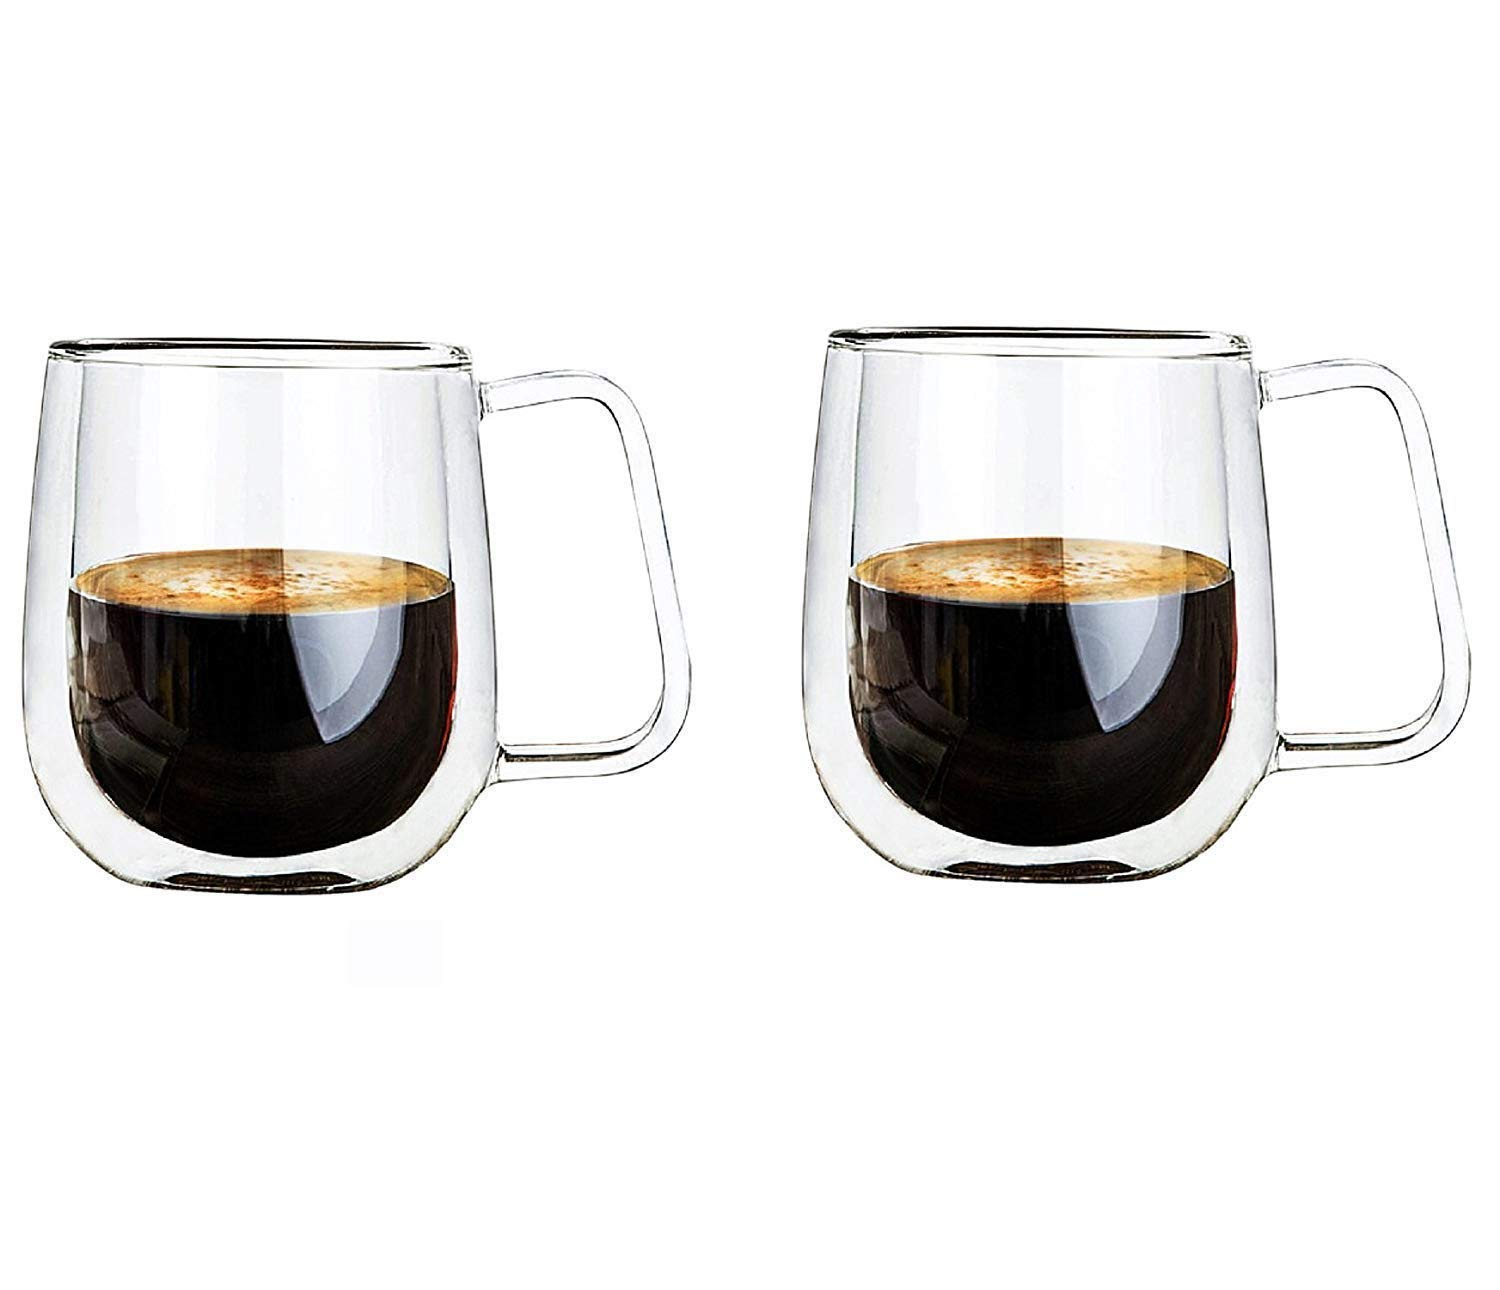 Vicloon Double Walled Glass Mugs,Borosilicate Glass Cups,for Tea,Coffee,Latte,Cappuccino,Espresso,Beer,250ml